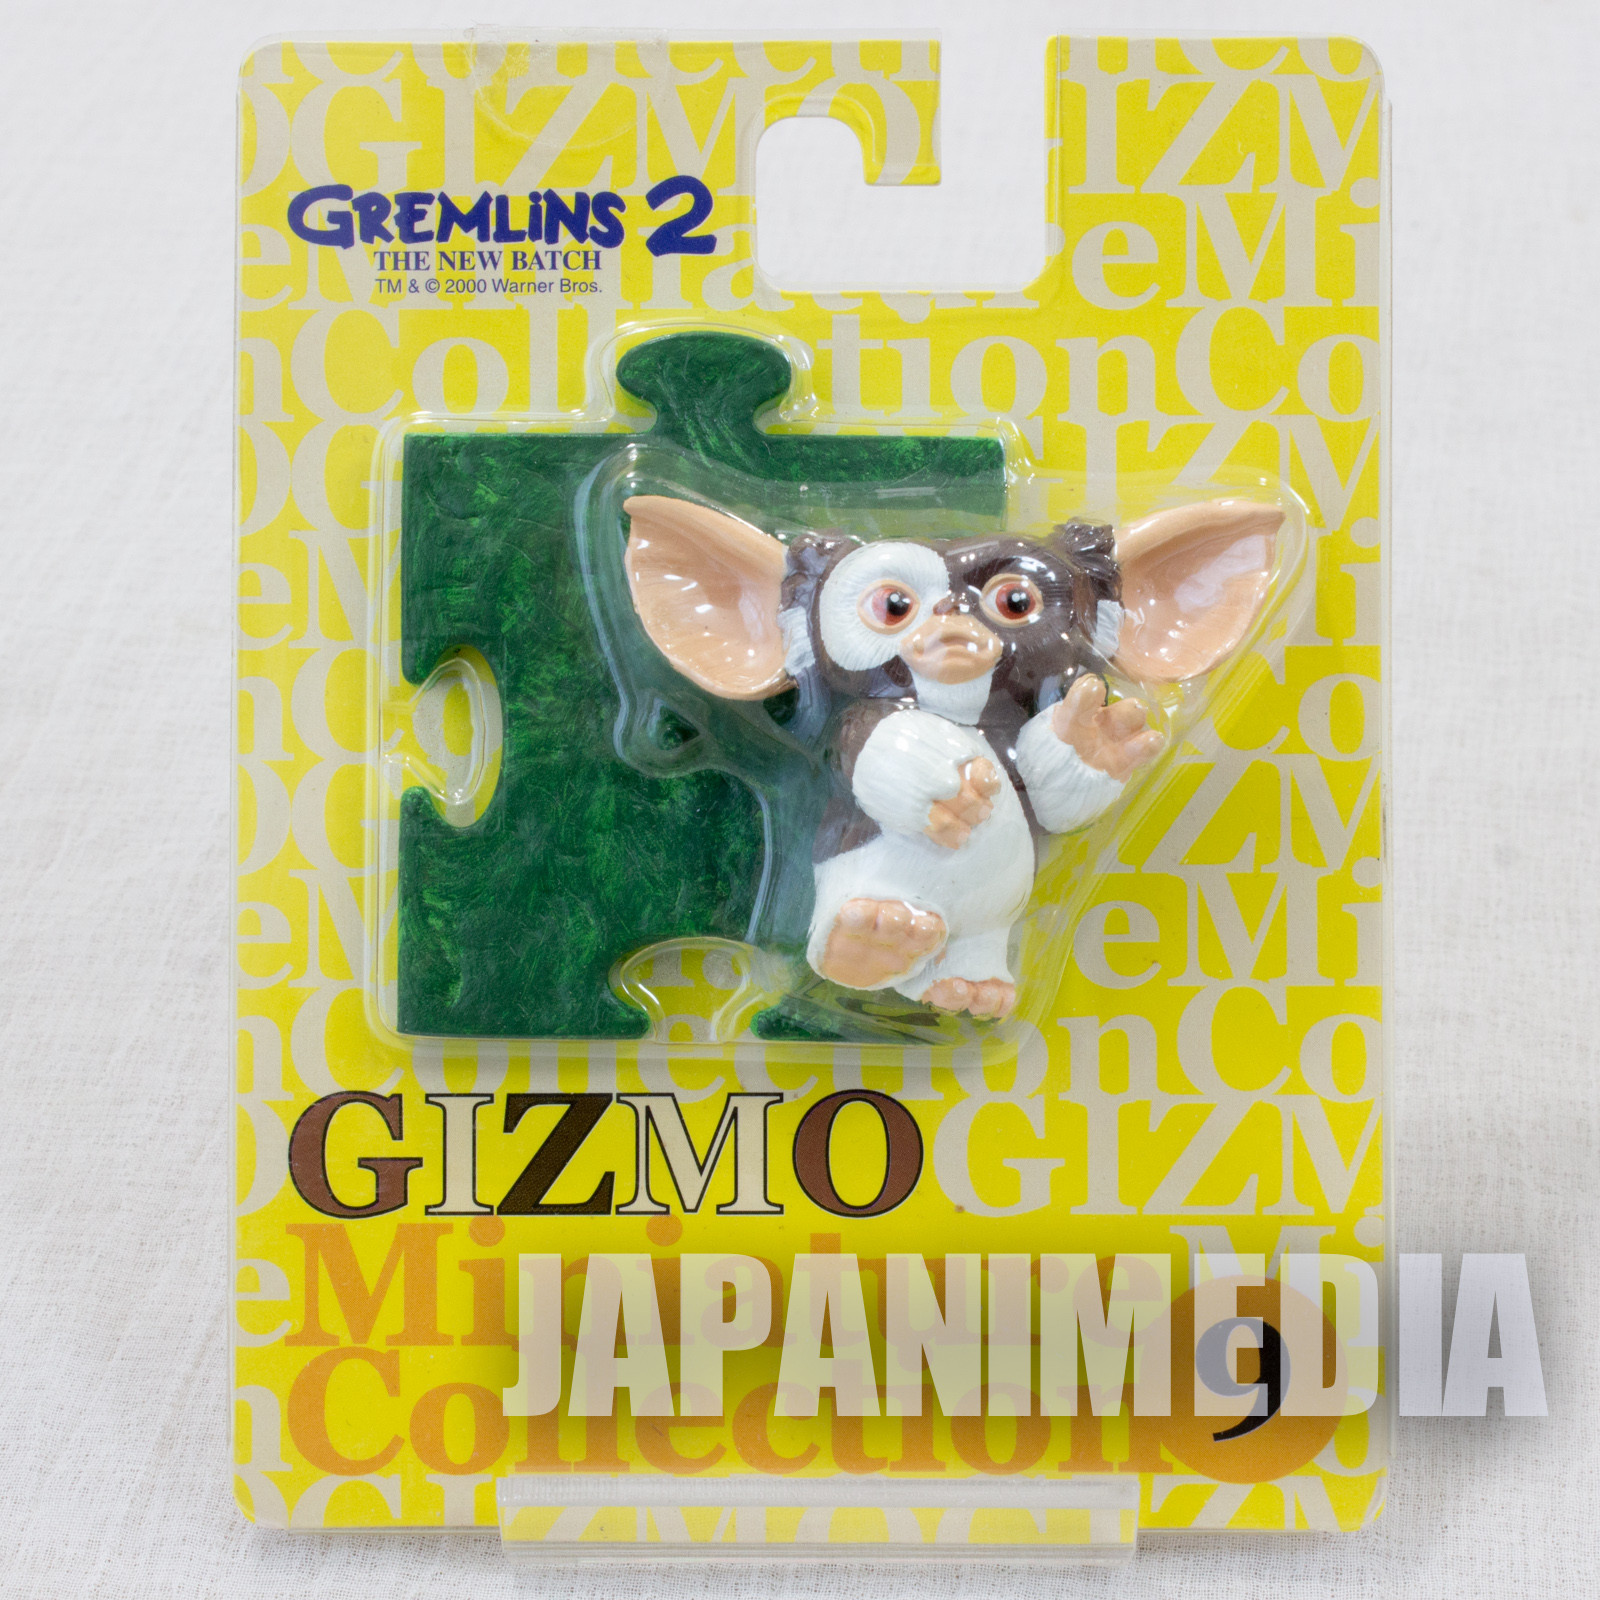 Gremlins 2 The New Batch Gizmo Miniature Figure Collection #9 Jun Planning JAPAN